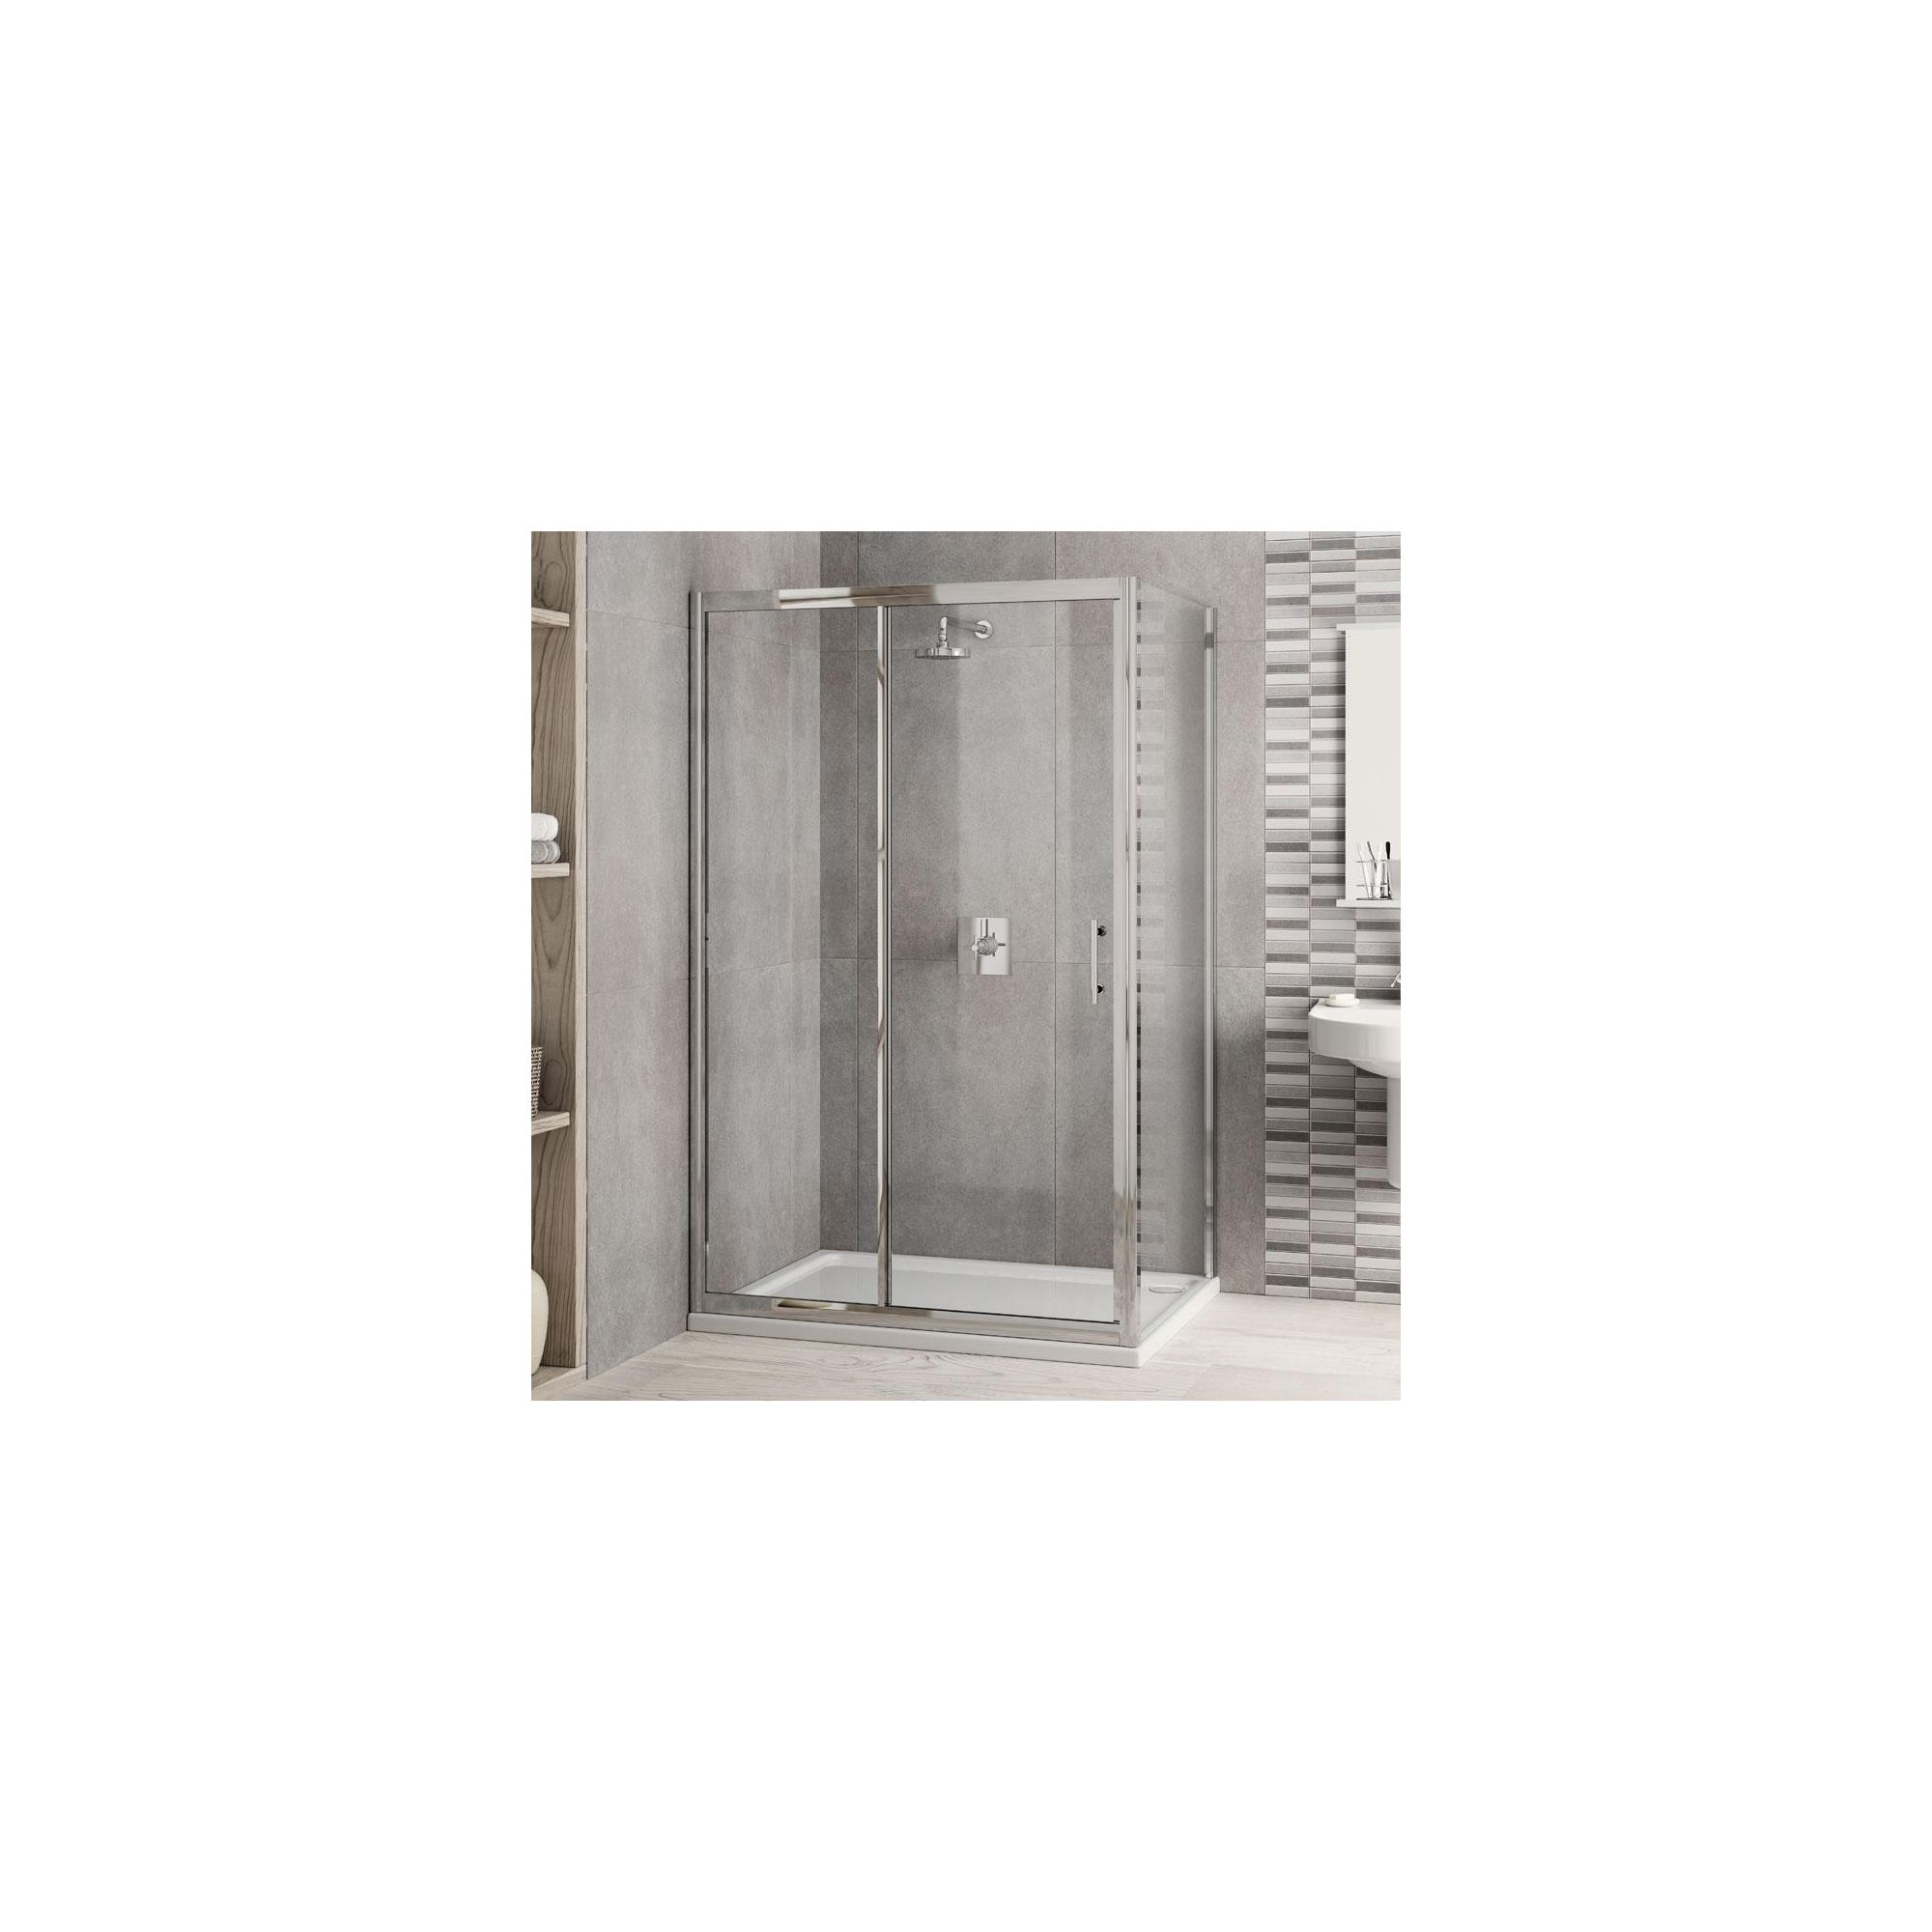 Elemis Inspire Two-Panel Jumbo Sliding Shower Door, 1400mm Wide, 6mm Glass at Tesco Direct